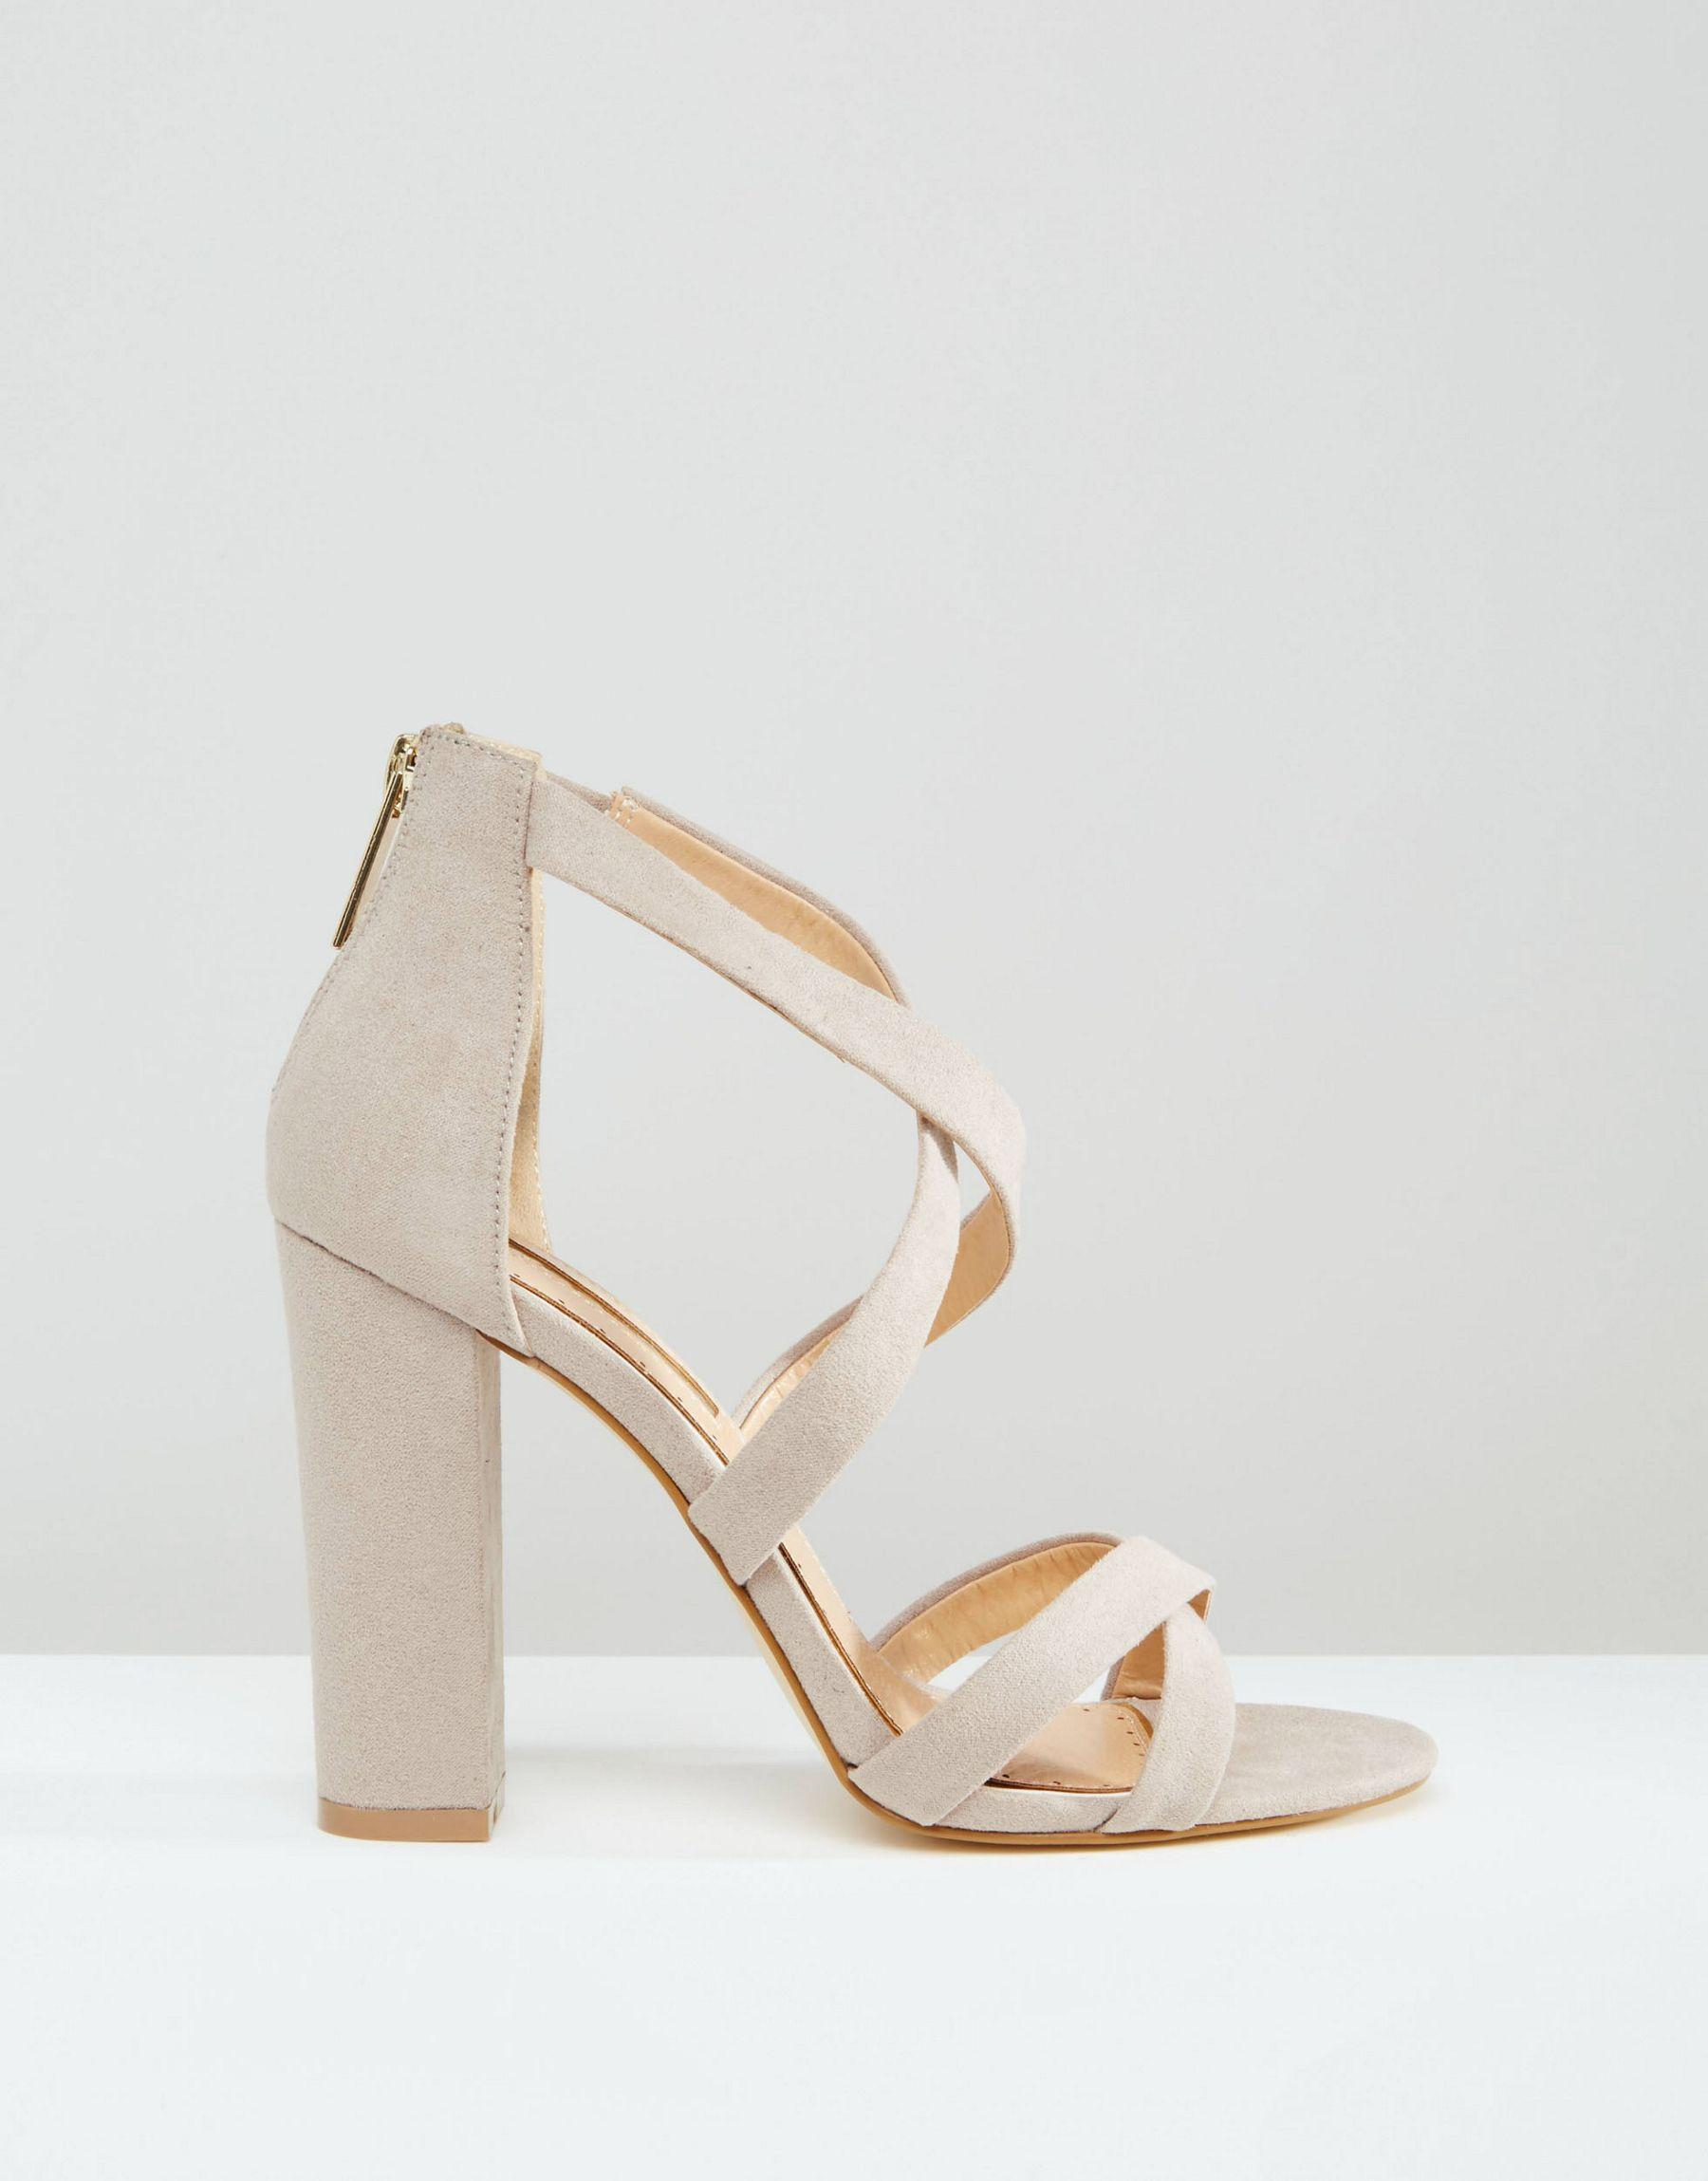 Miss Kg Barely There Heeled Sandal in Orange - Lyst